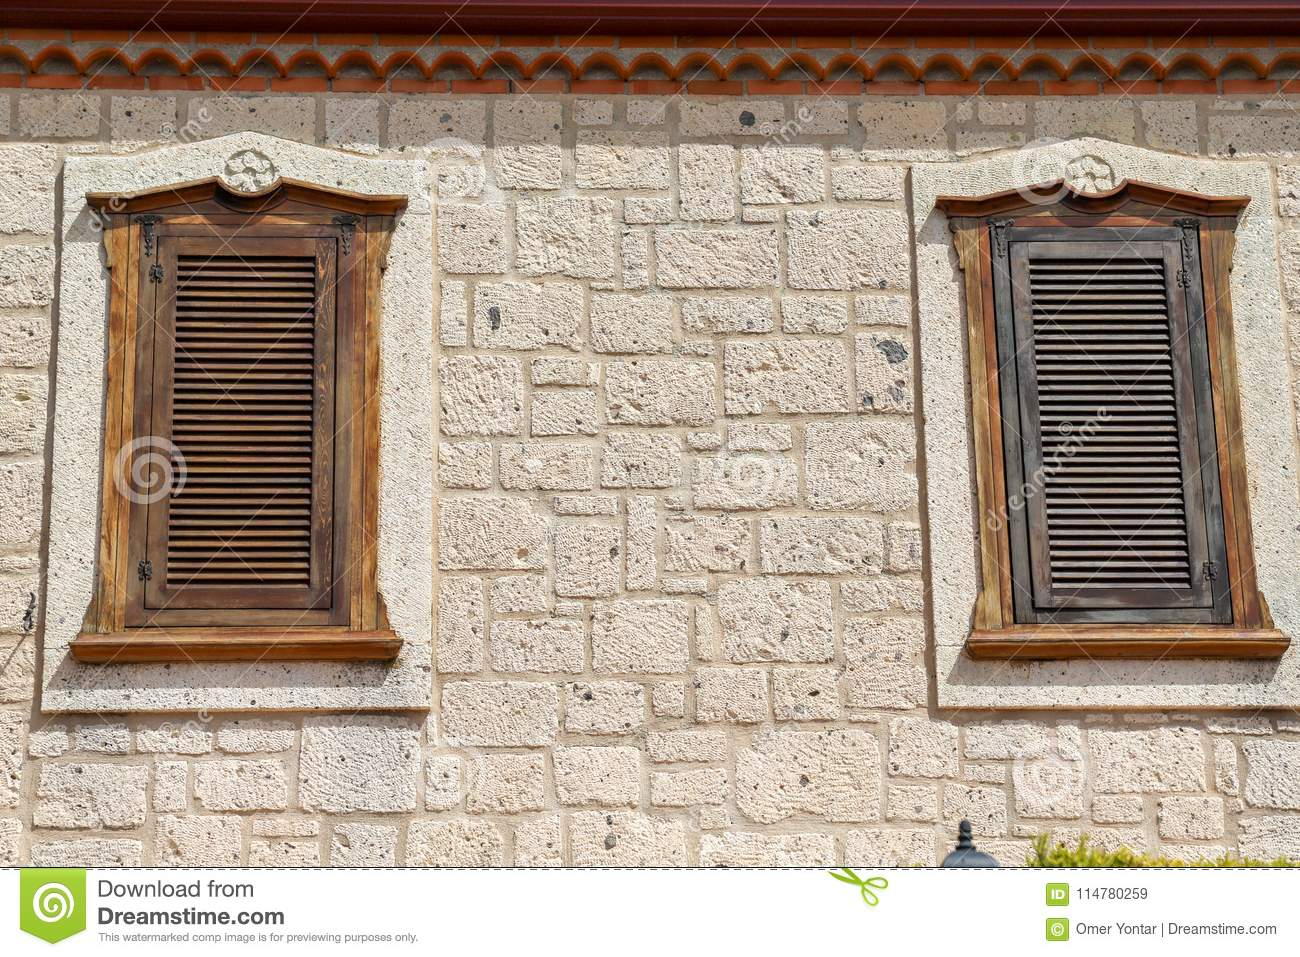 Old doors and windows stock image. Image of exterior - 114780259